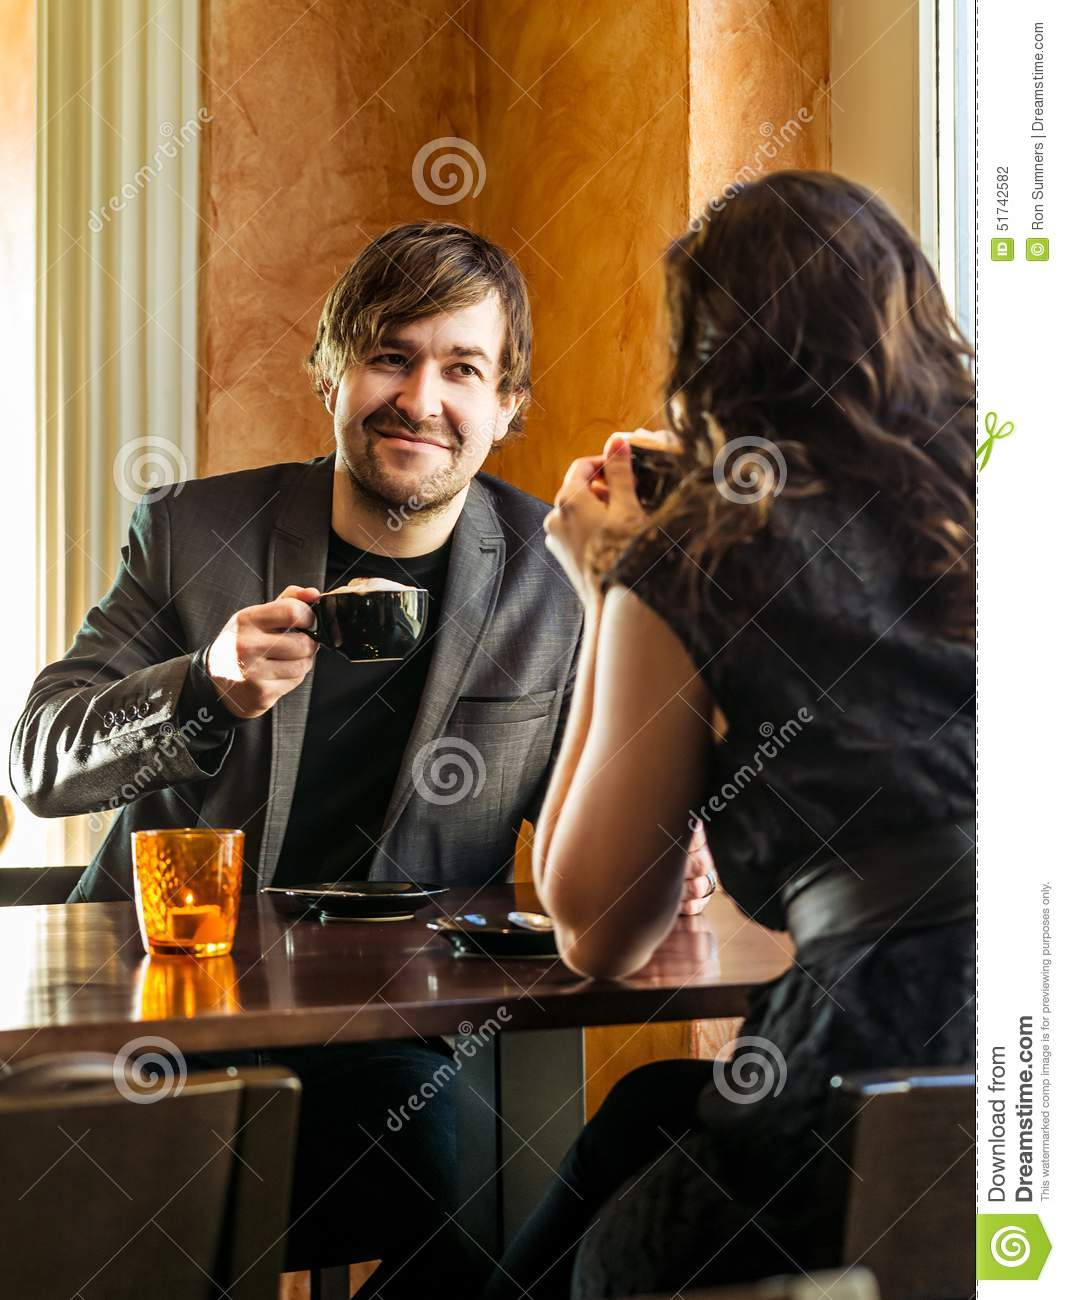 coffee shop online dating Dating relationships ex back you are likely to find a coffee shop i often get asked how to pick up women in coffee shops by guys who aren't really into.